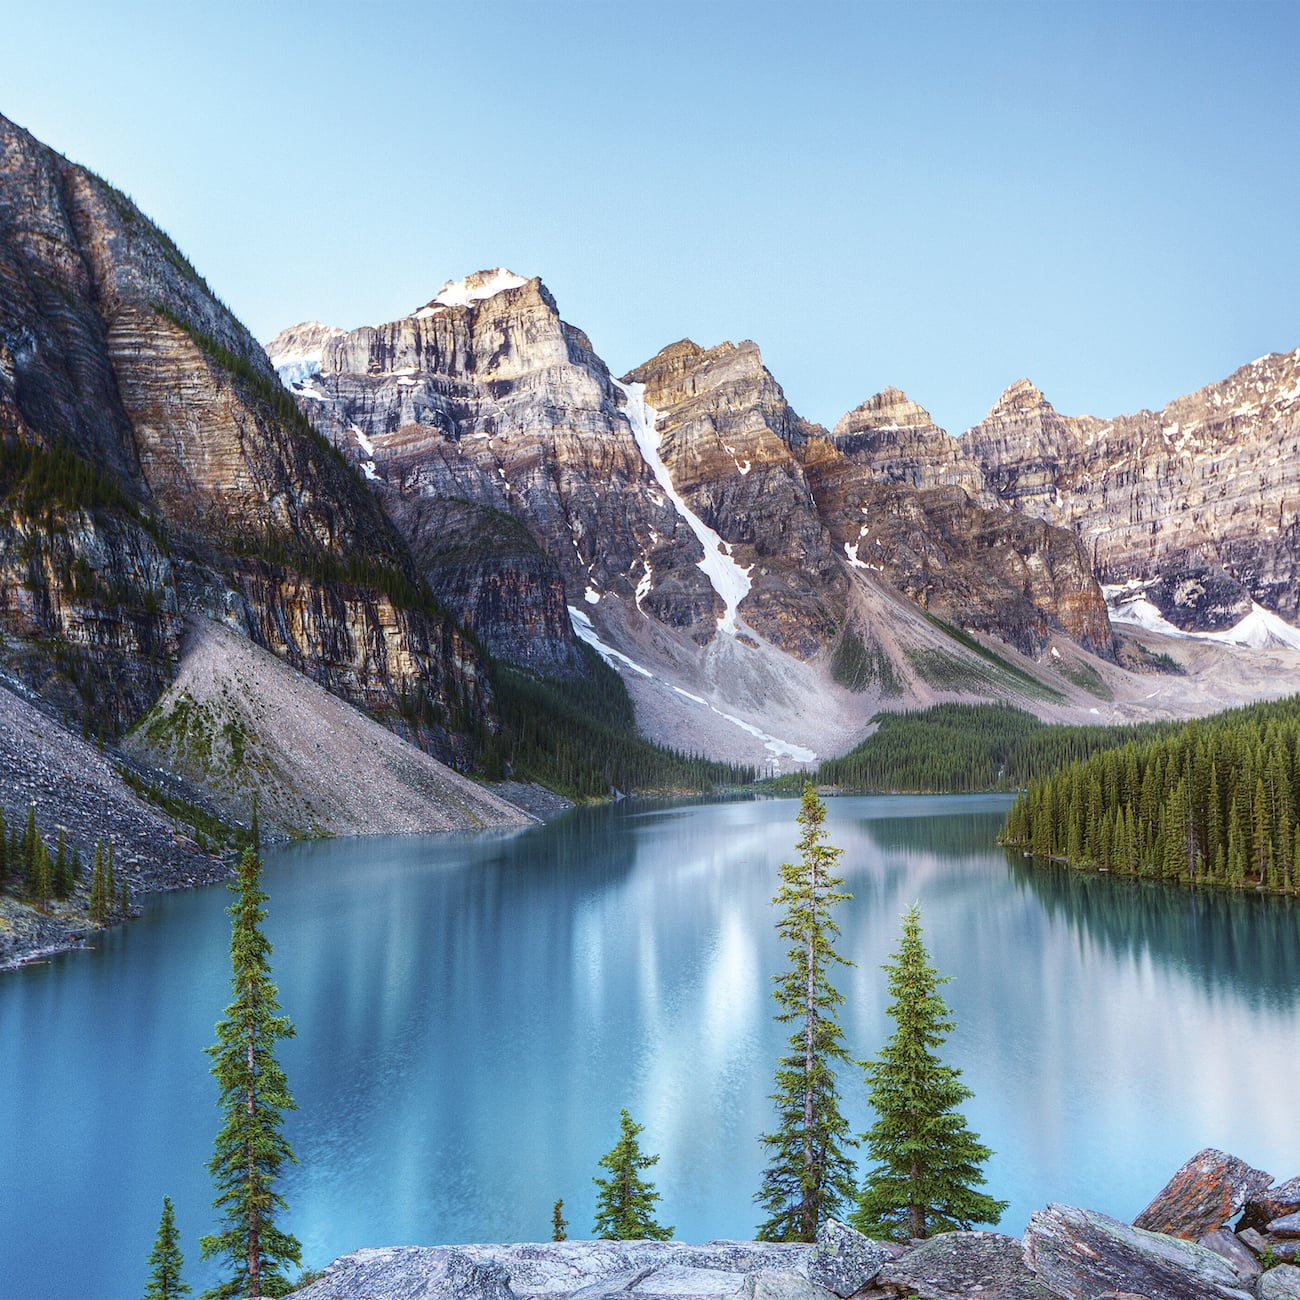 Moraine Lake flows through the glacial mountain peaks of Banff National Park